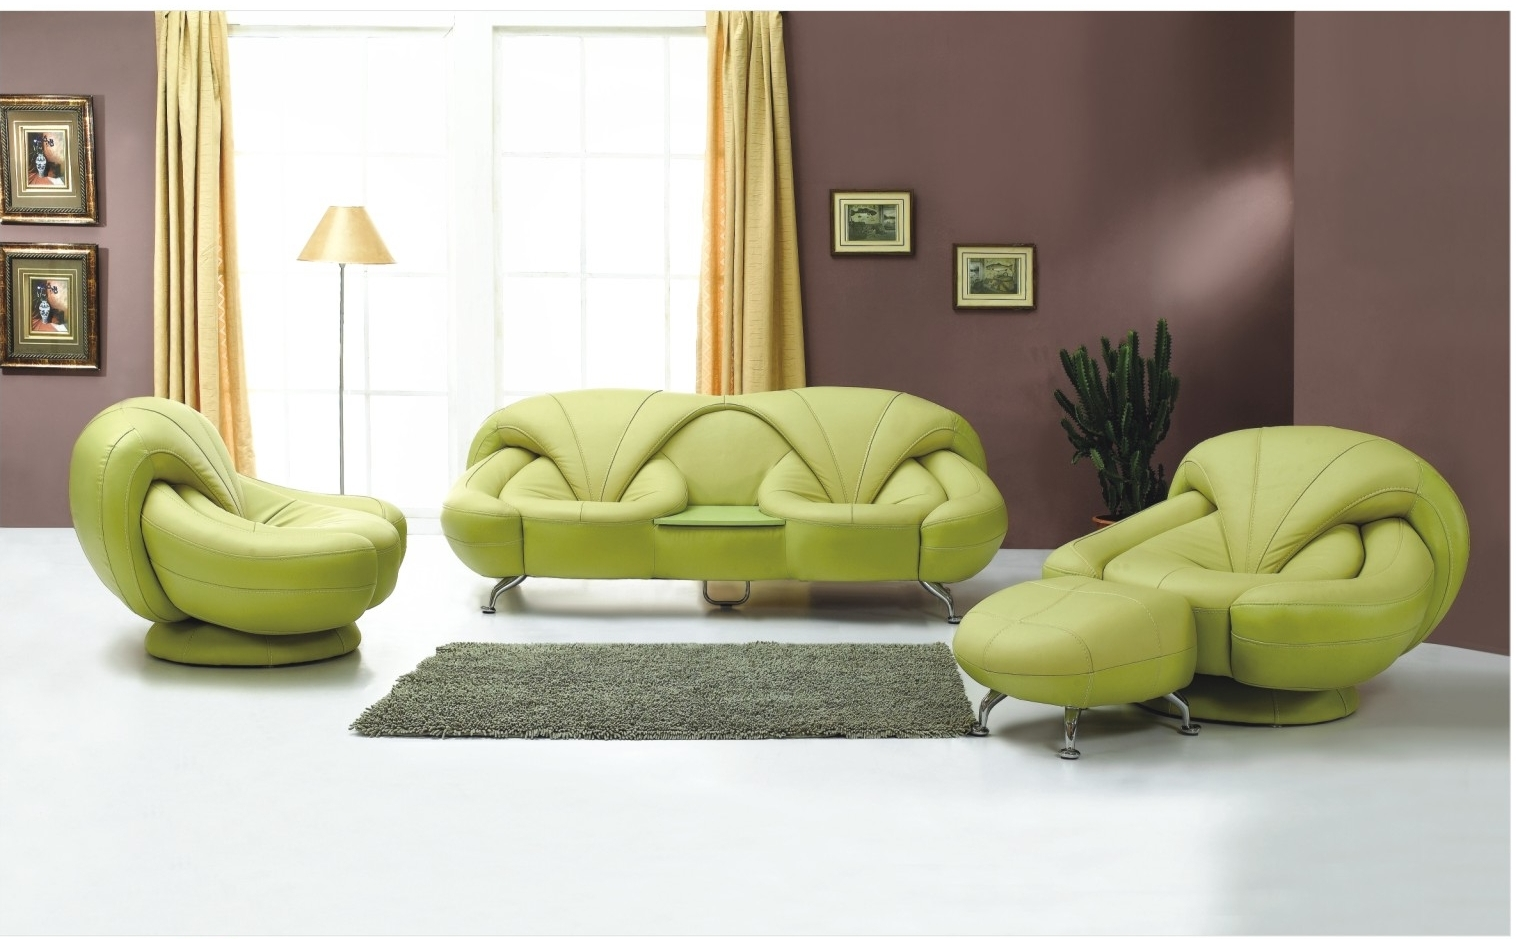 Modern living room furniture designs ideas an interior - Living room sofa sets decoration ...